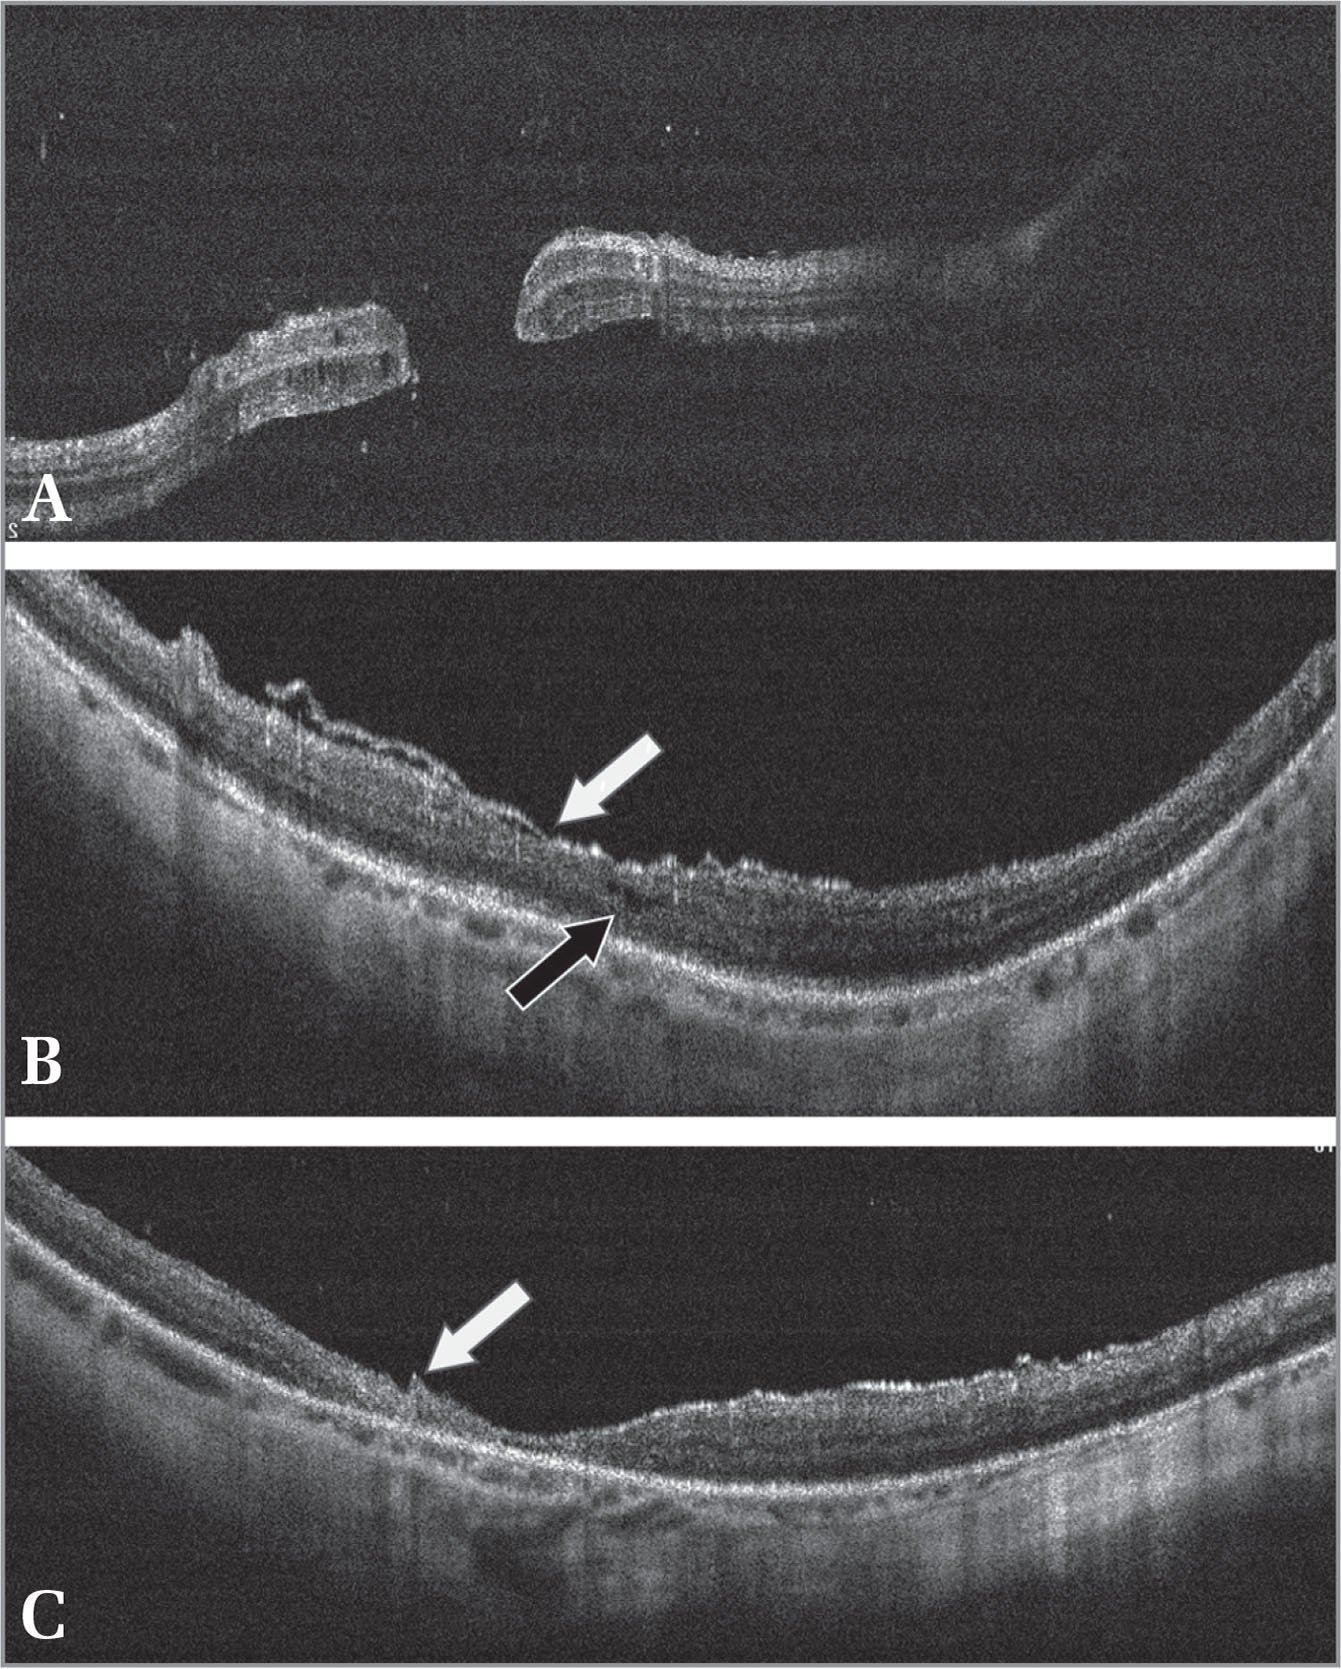 (A) Preoperative spectral-domain optical coherence tomography (SD-OCT) image showing recurrent retinal detachment (RD) with macular hole (MH). (B) One-month follow-up SD-OCT image of the macular area with myopic MH-associated RD starting to close (black arrow) and overlying amniotic membrane graft (AMG) (white arrow). (C) Six-month follow-up SD-OCT image of the macular area with maintained sealed MMH and still seen edge of the AMG (white arrow).